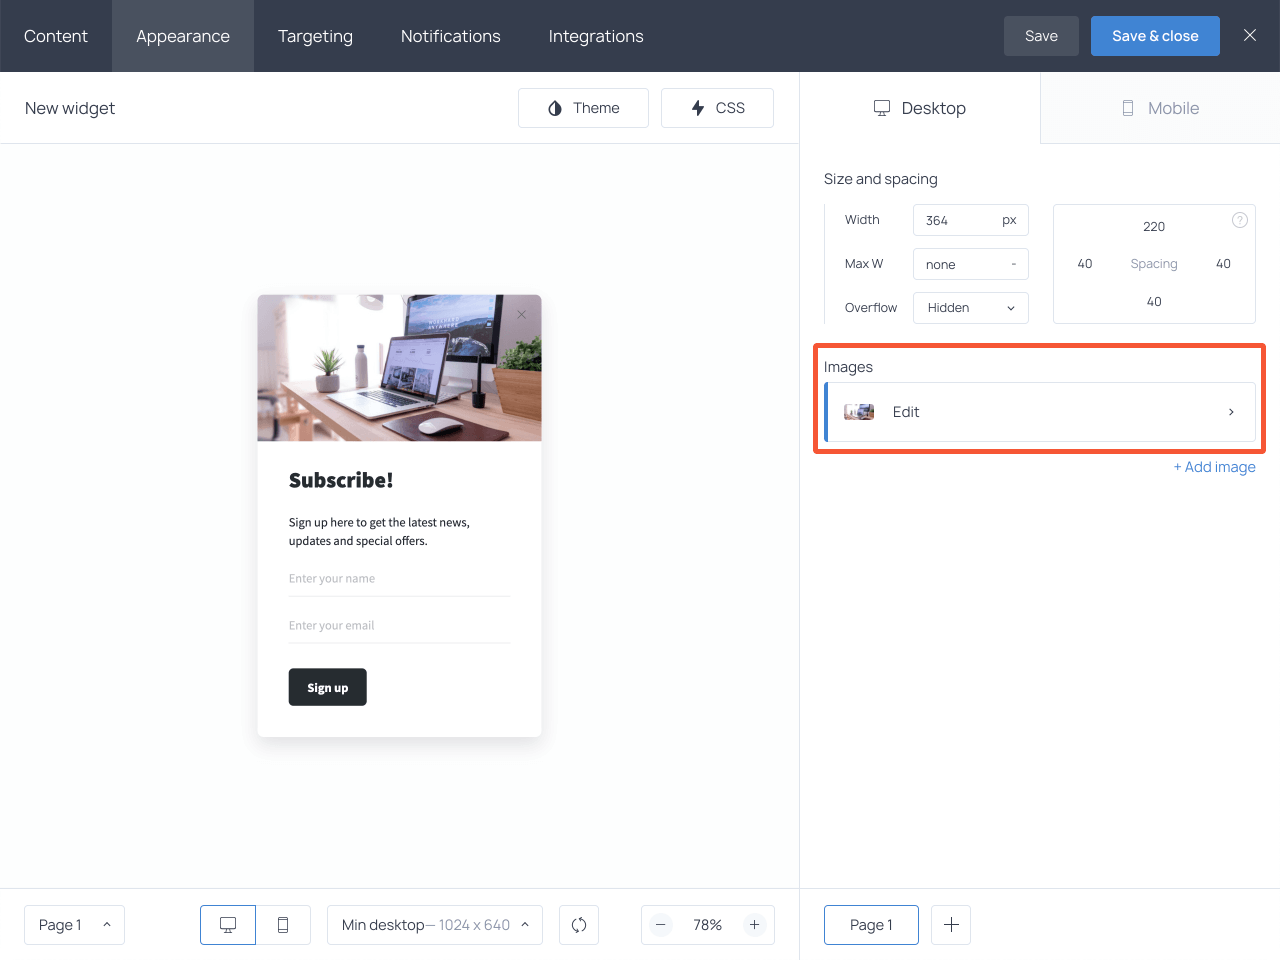 Edit image button on the Appearance tab